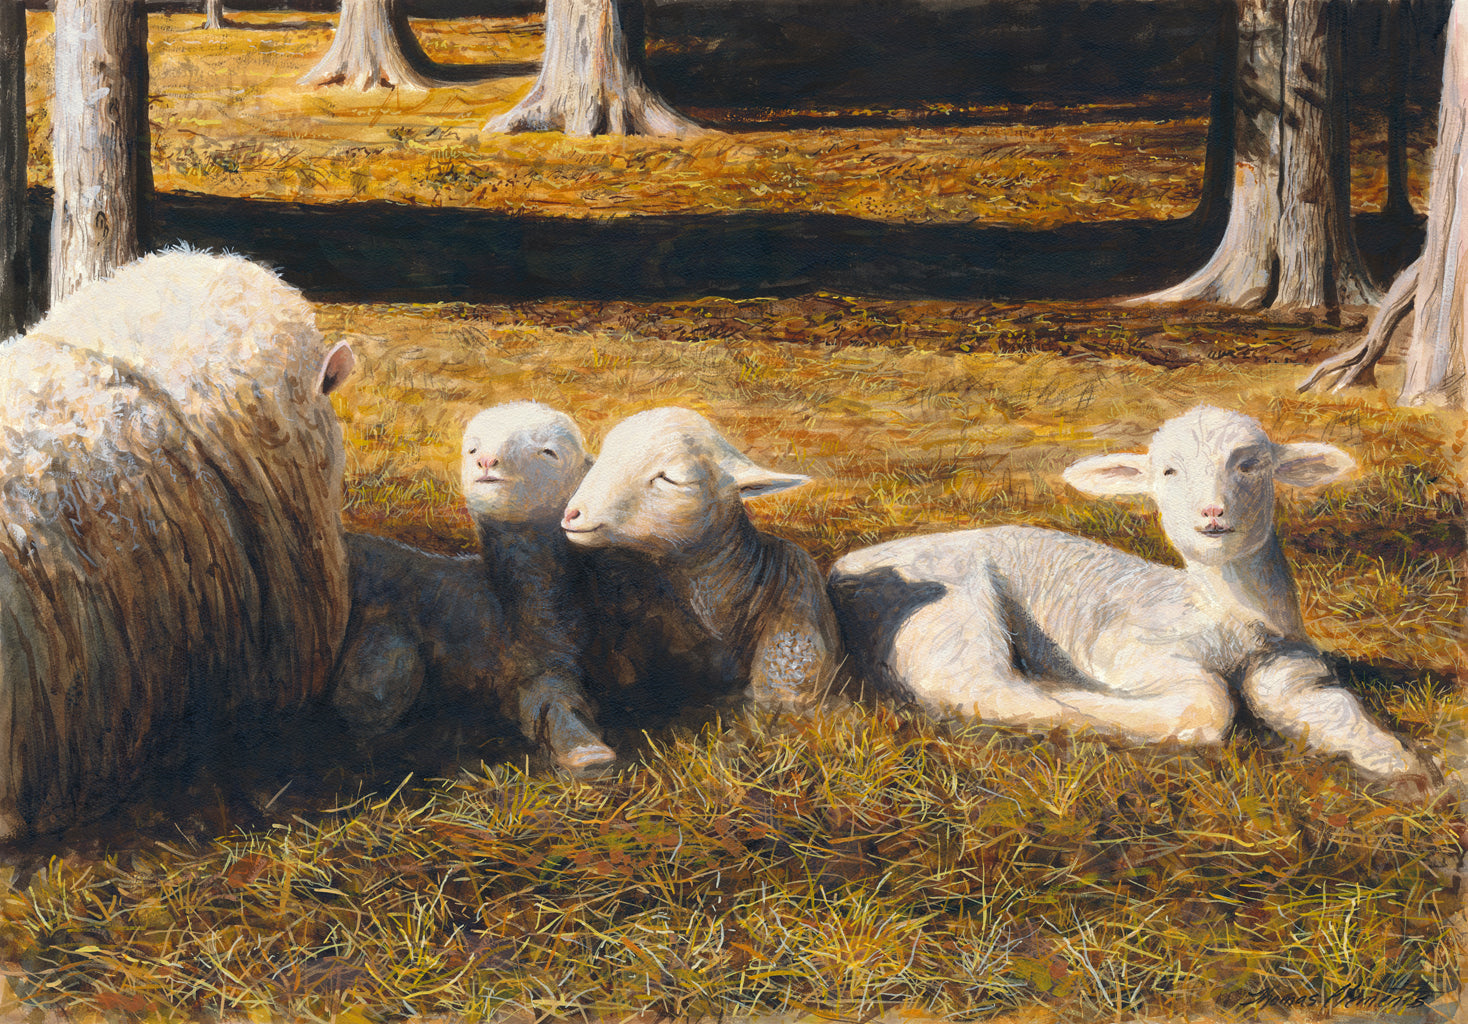 Ewe Sheep and Three Triplet Lambs Resting Painting Giclée Print